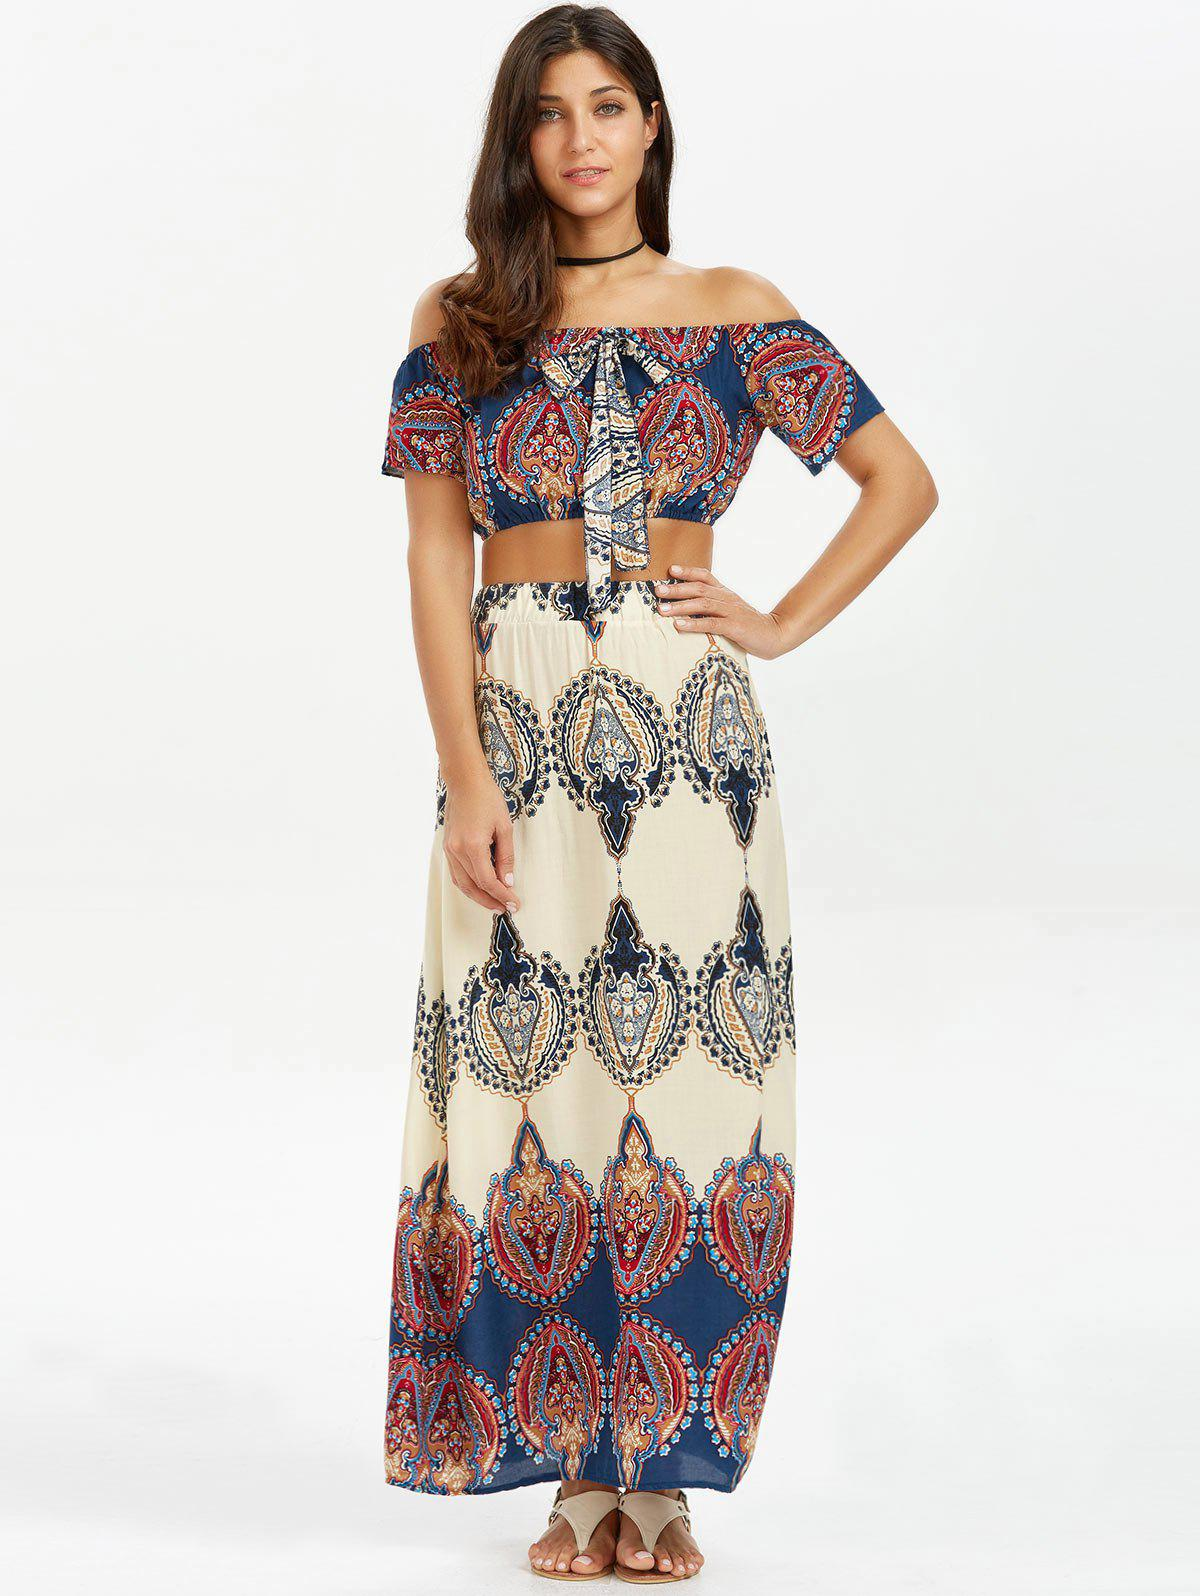 Off The Shoulder Print Two Piece Dress - COLORMIX S